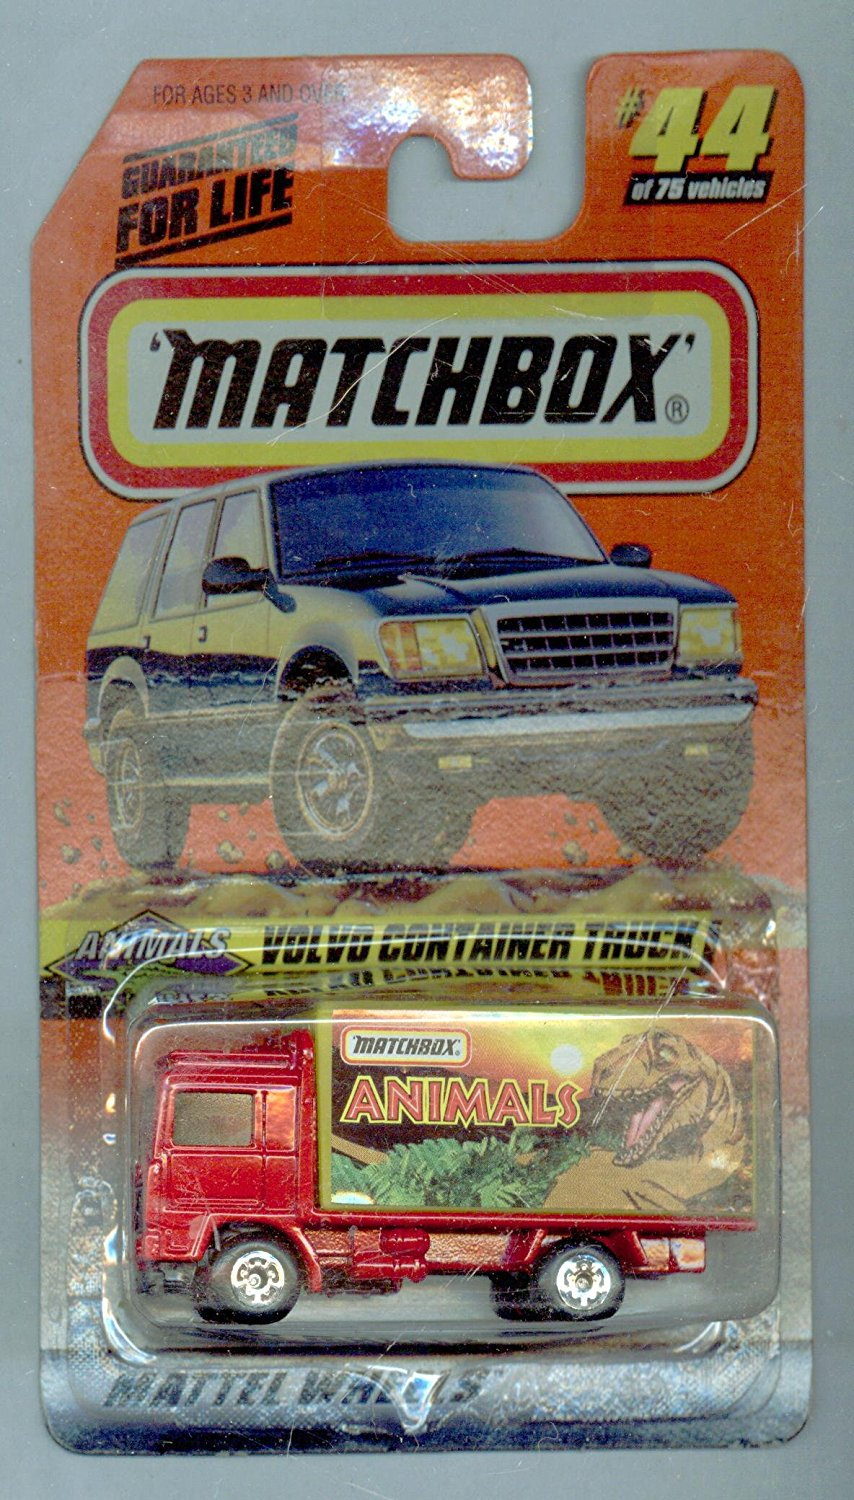 1998-44 75 Animals Series 6 Volvo Container Truck 1:64 Scale, By Matchbox from USA by